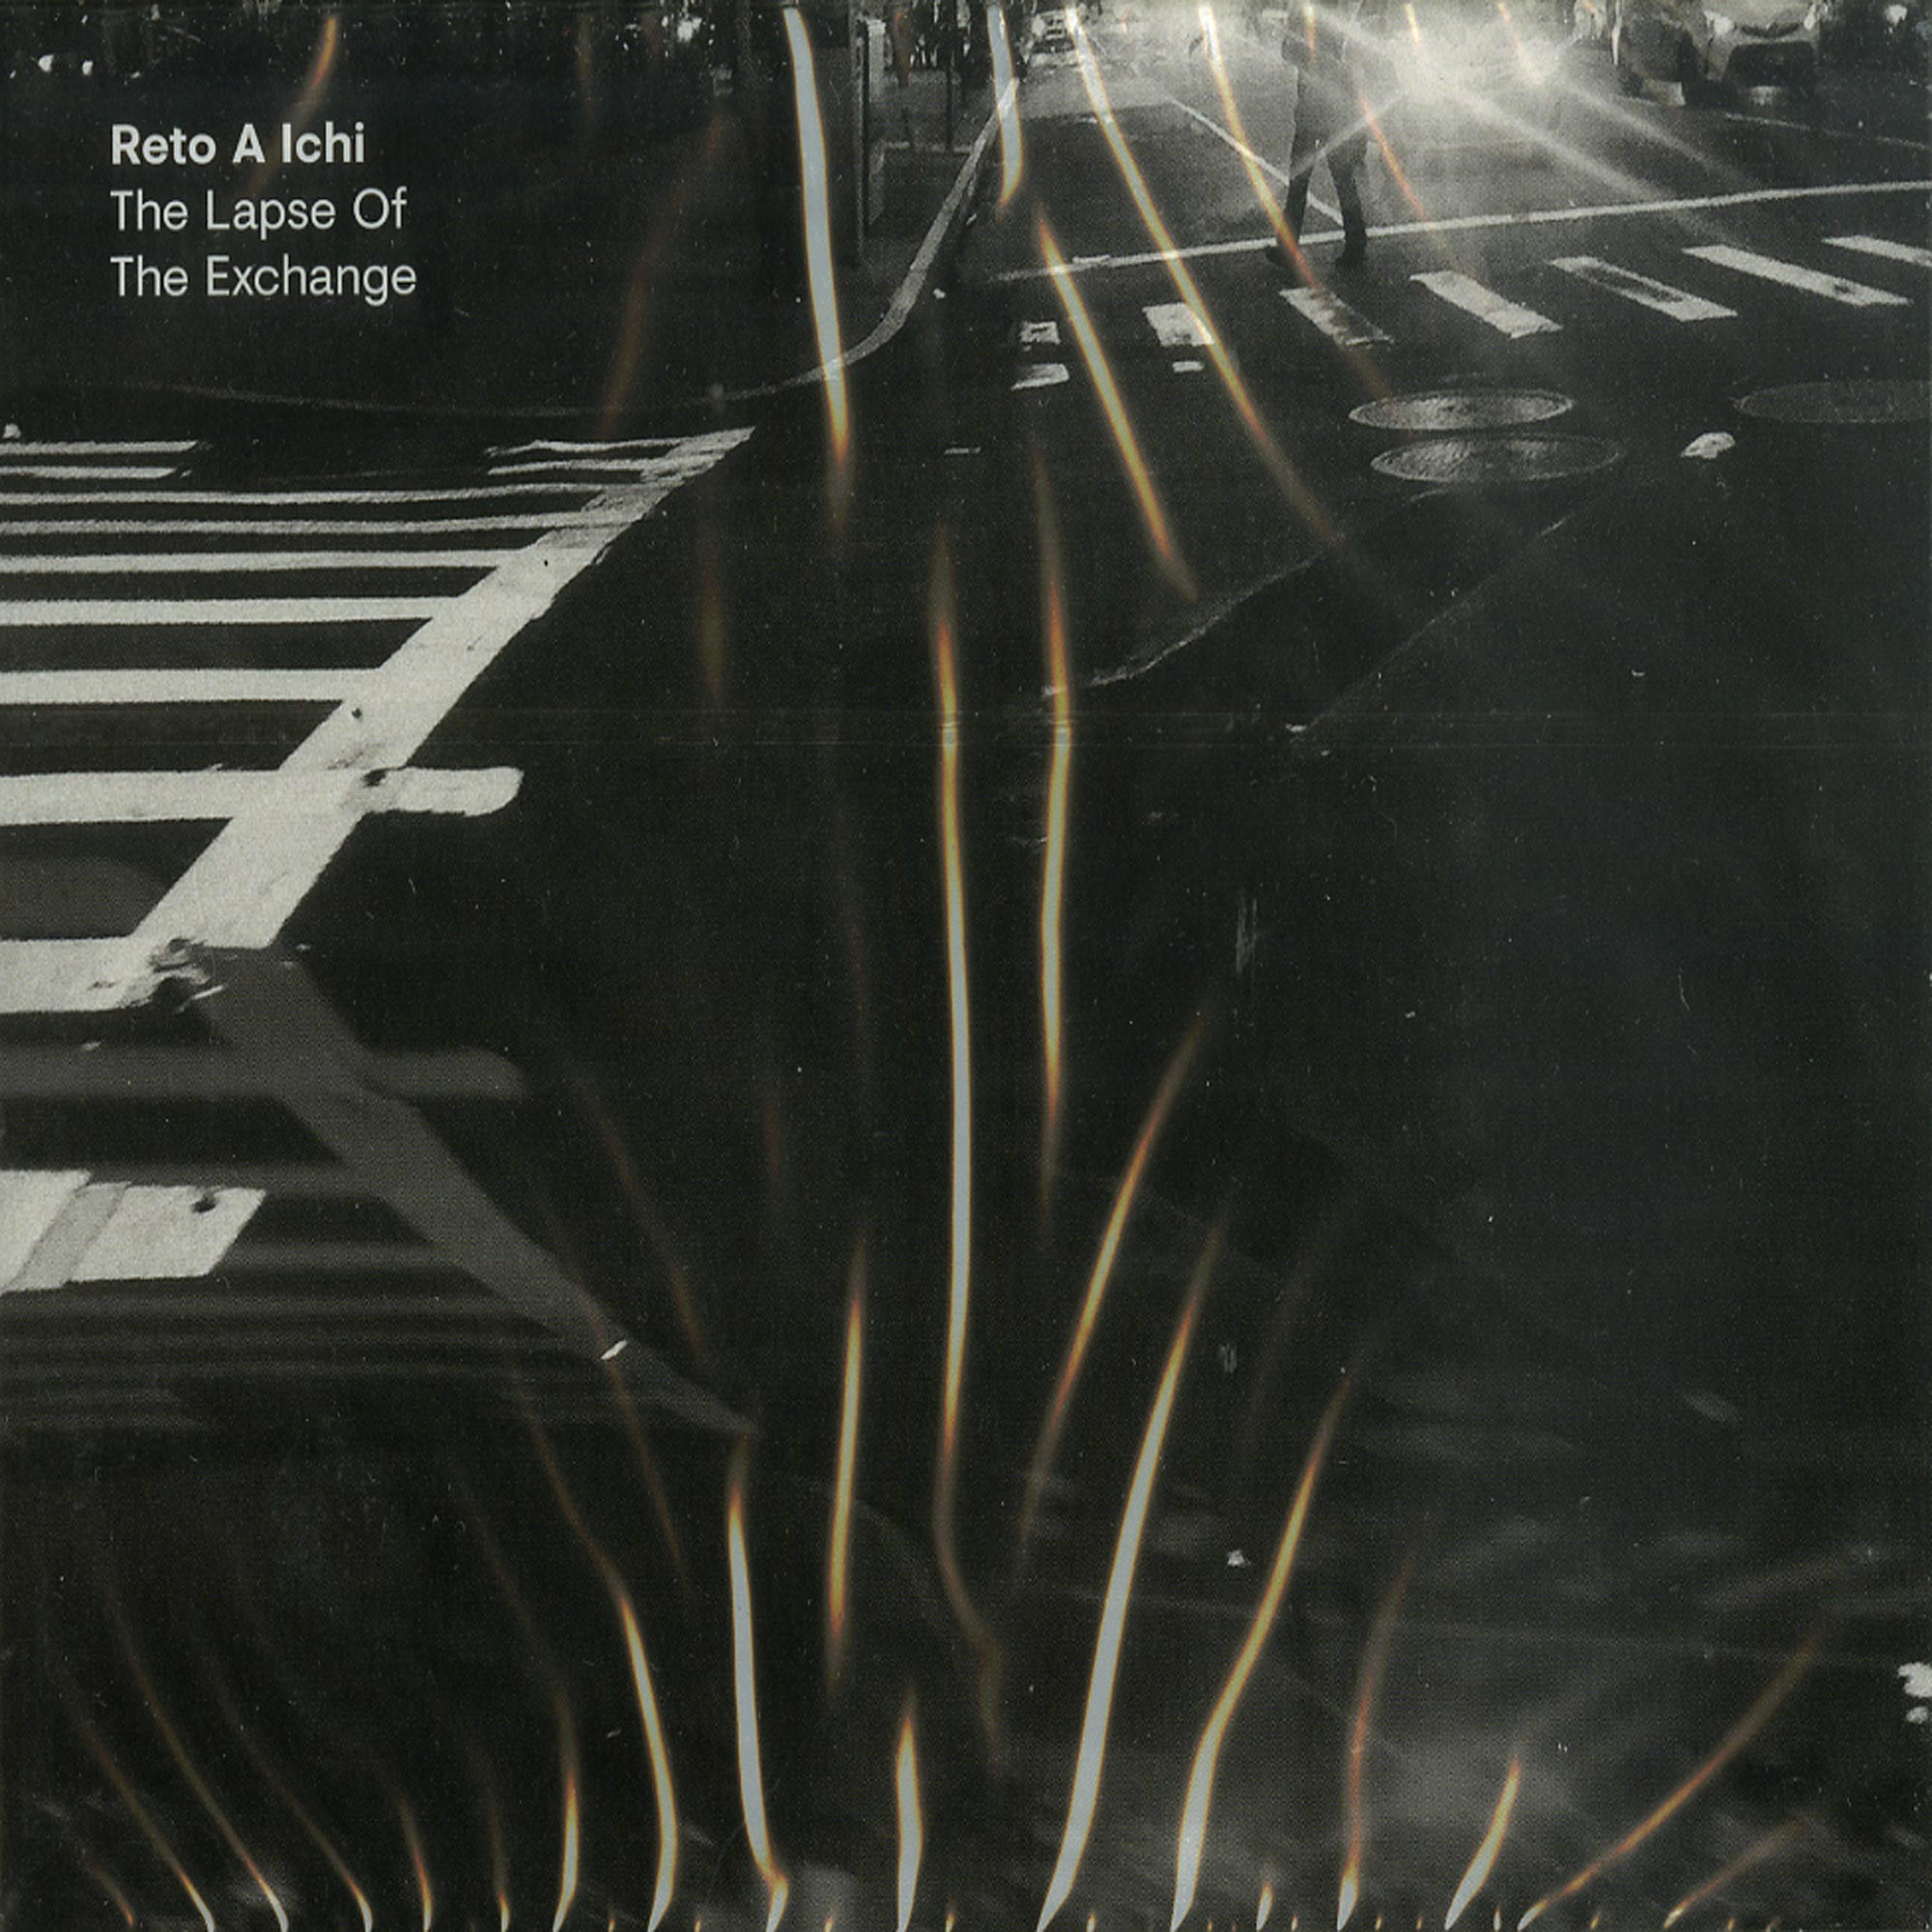 Reto A Ichi - THE LAPSE OF THE EXCHANGE / ALONE MOVING OFTEN